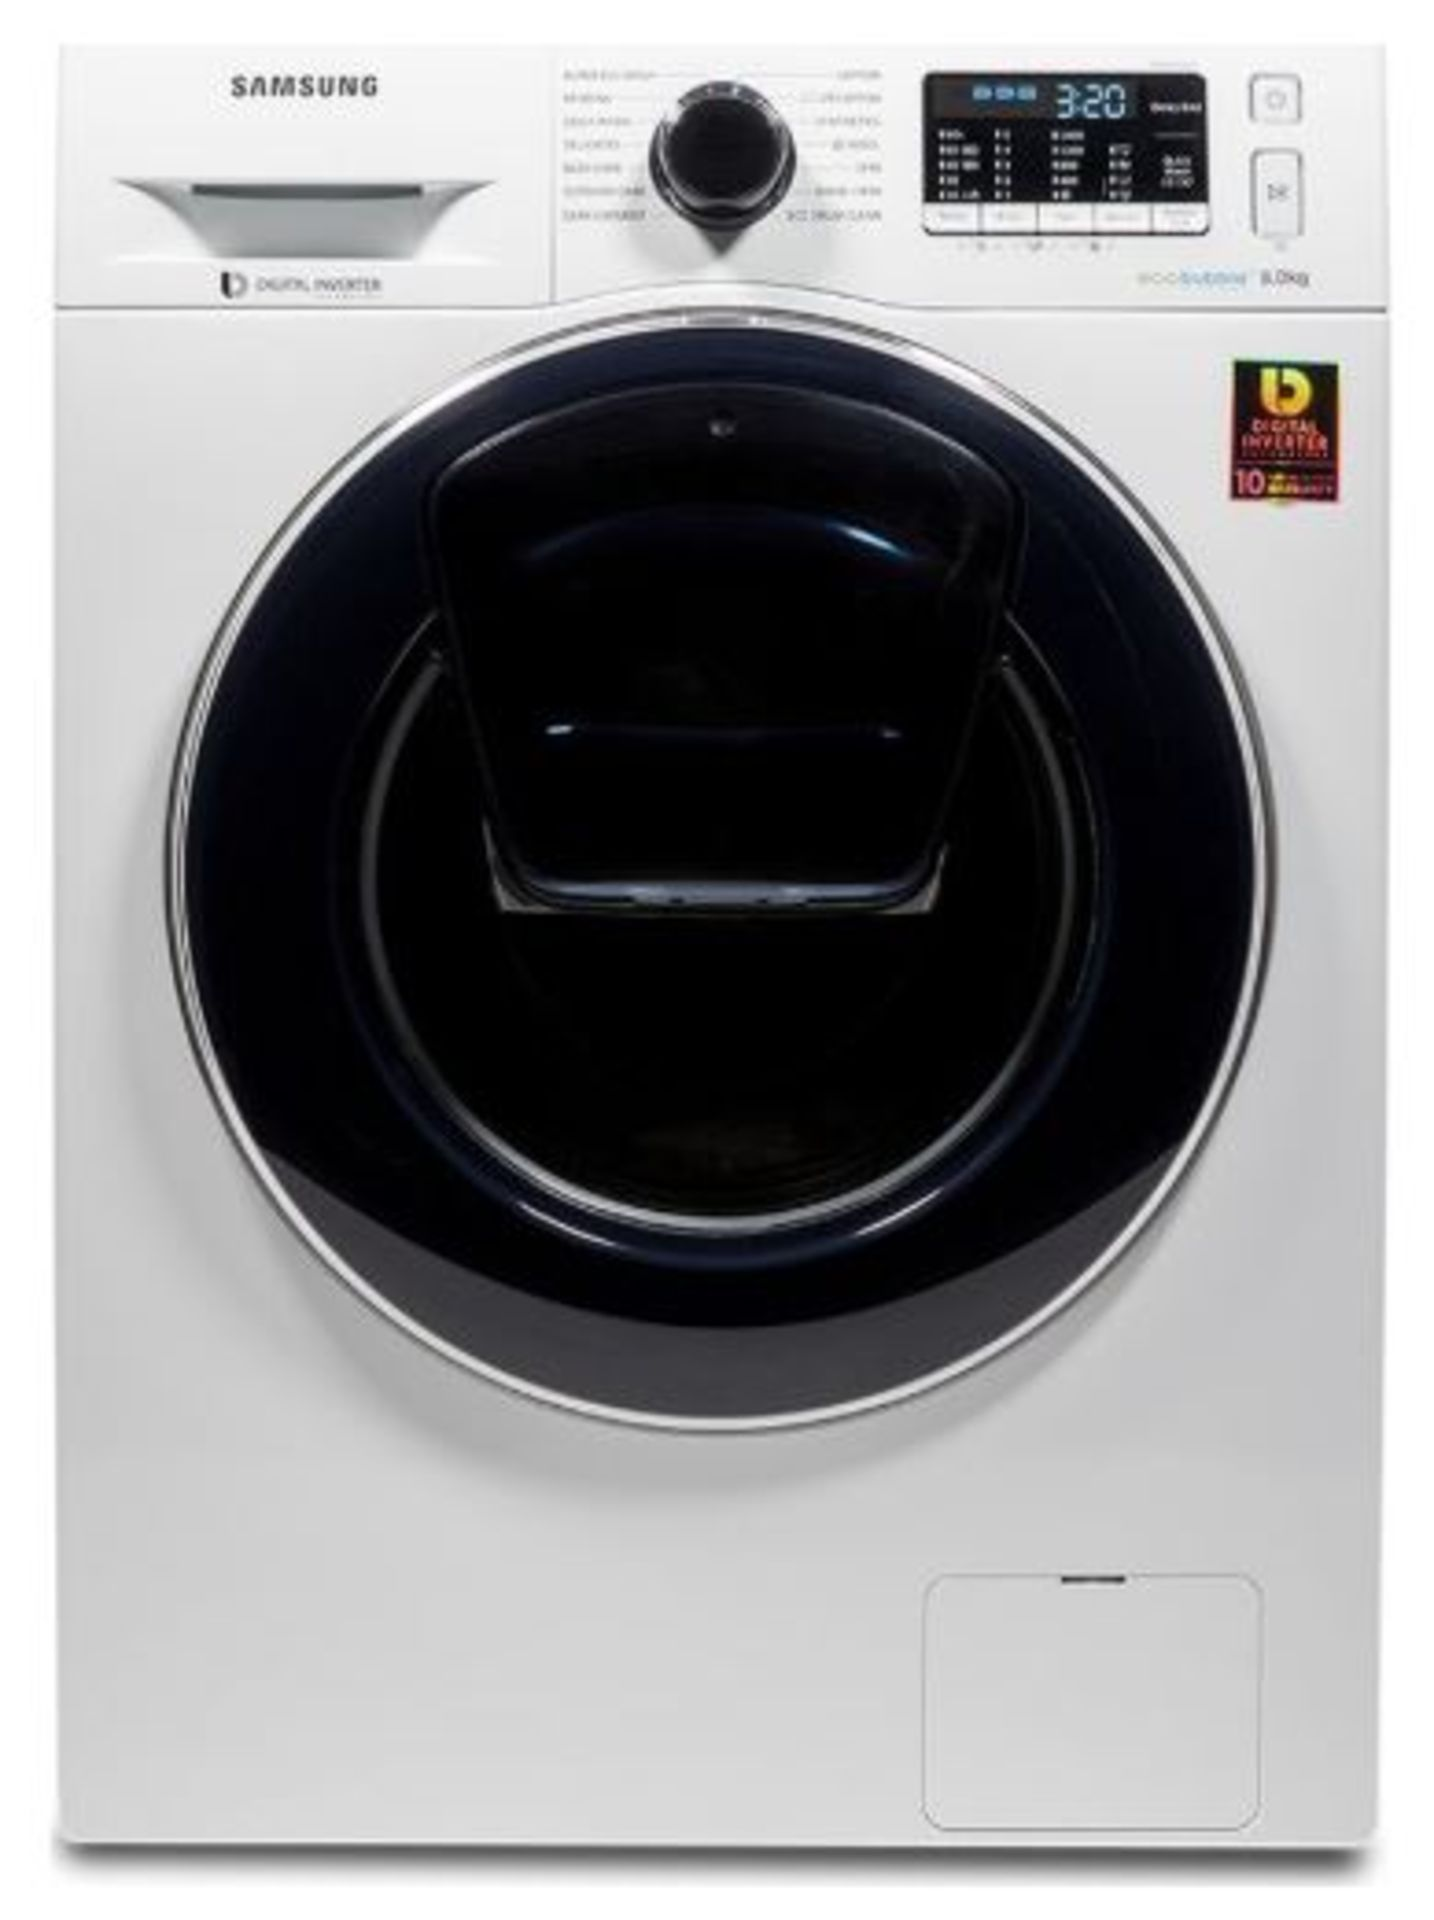 Pallet of 3 Samsung Premium Washing machines. Total Latest selling price £1,087*